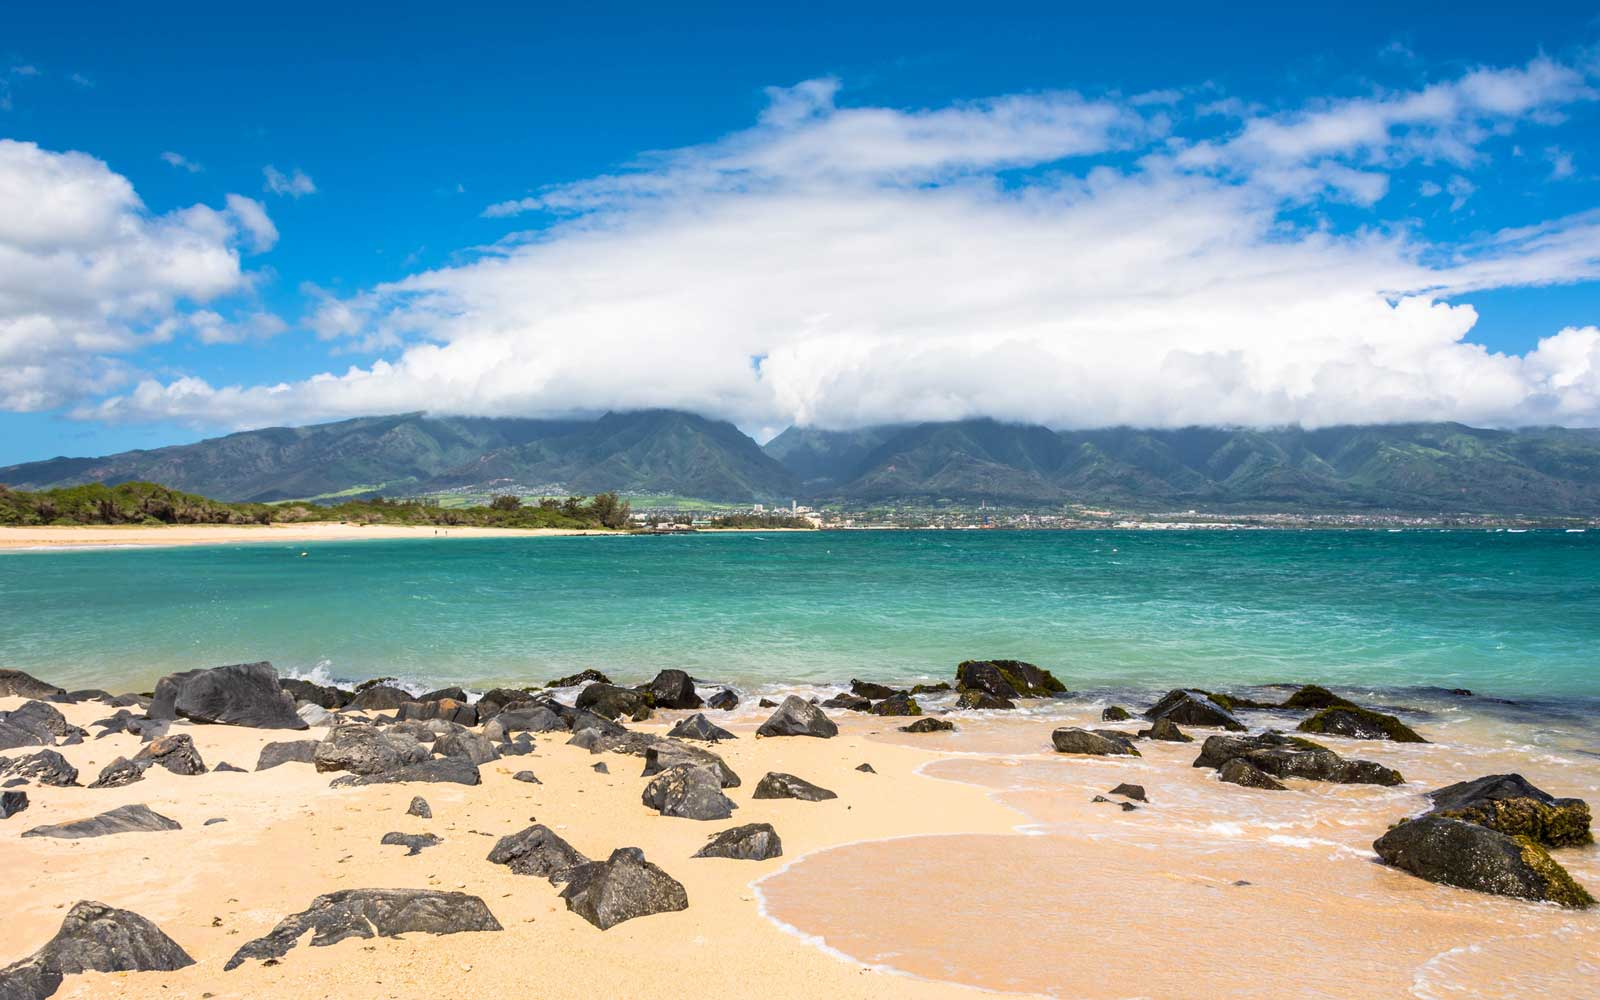 Cheap Flights to Hawaii Starting at $446 Round-trip